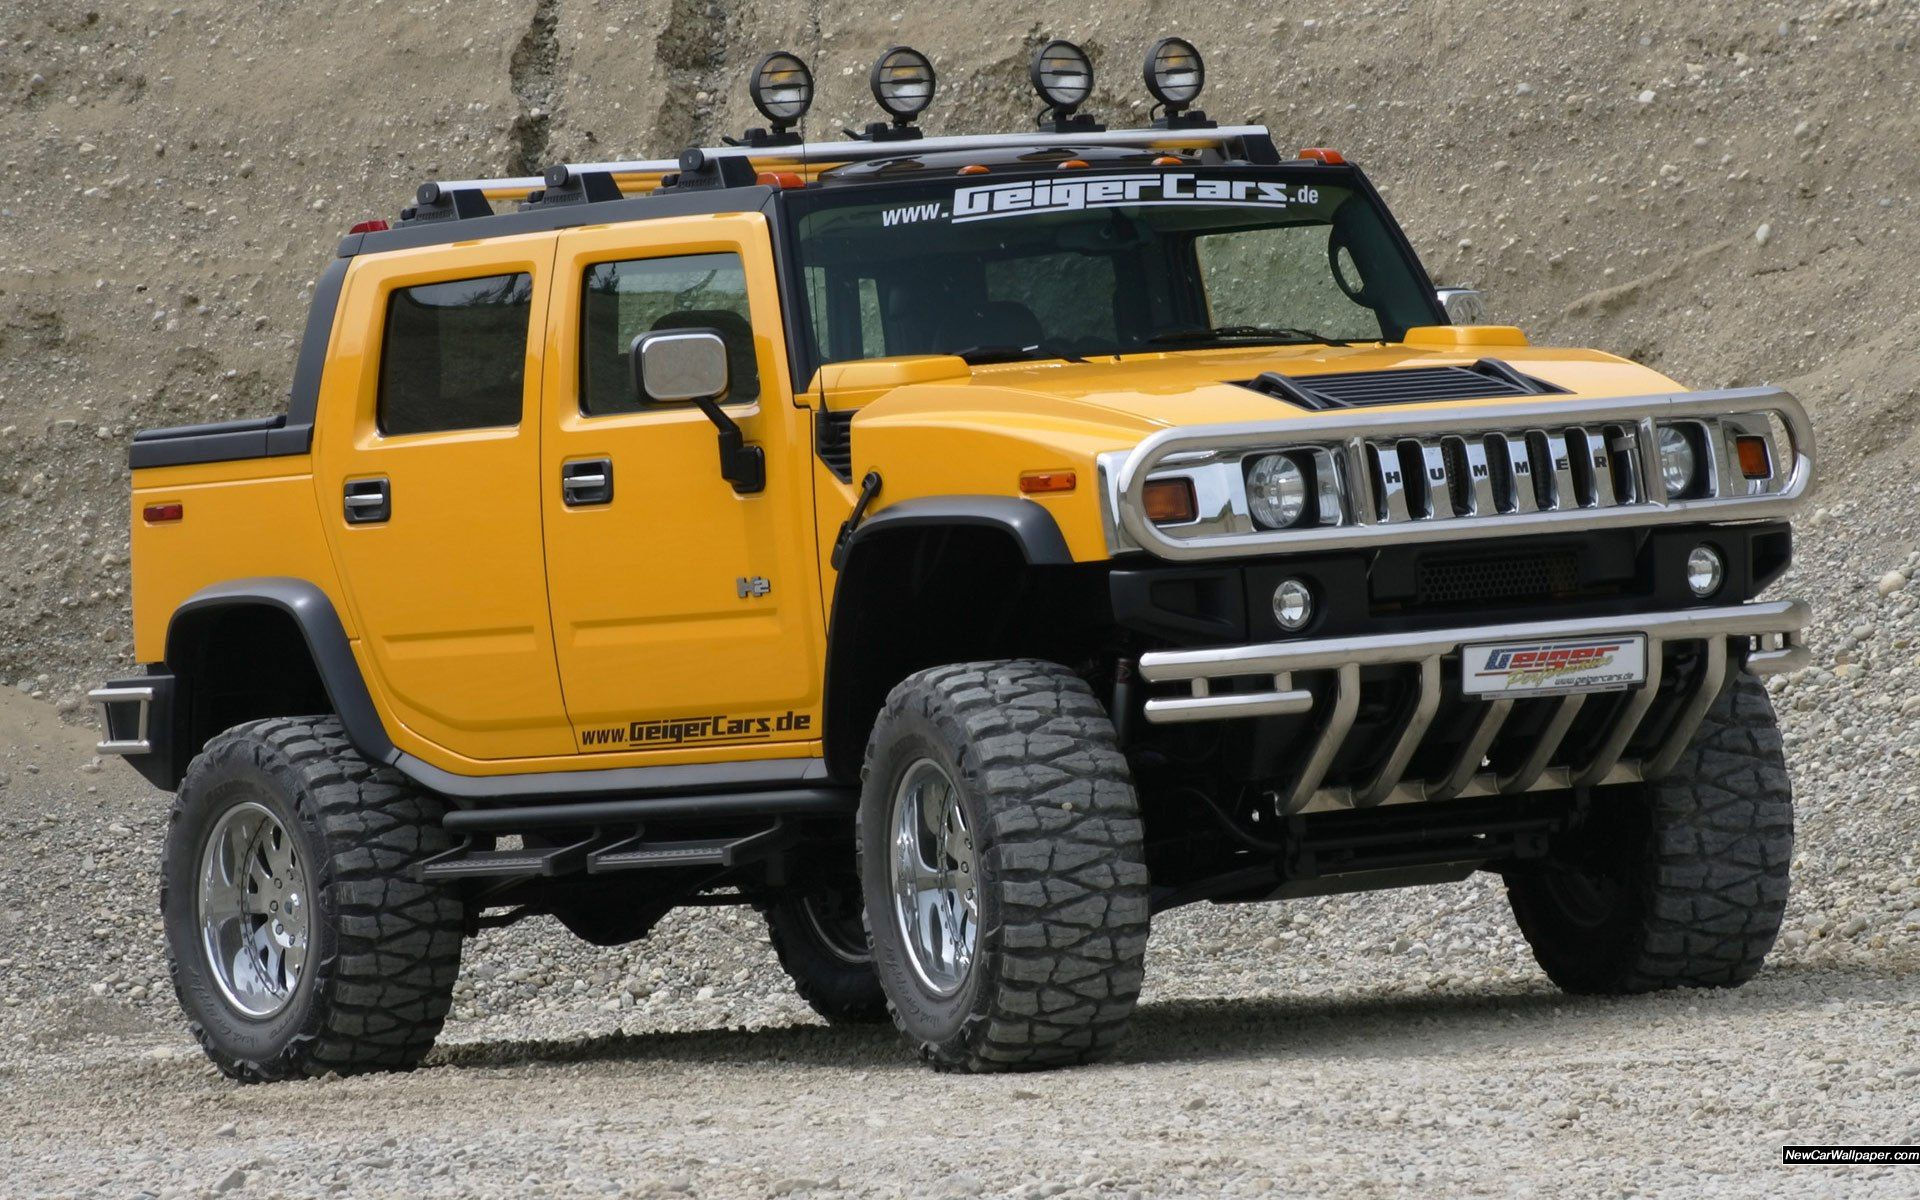 Luxury Cars, Hummer H2, Hummer Cars, Hummer Truck, Suv Reviews, Off